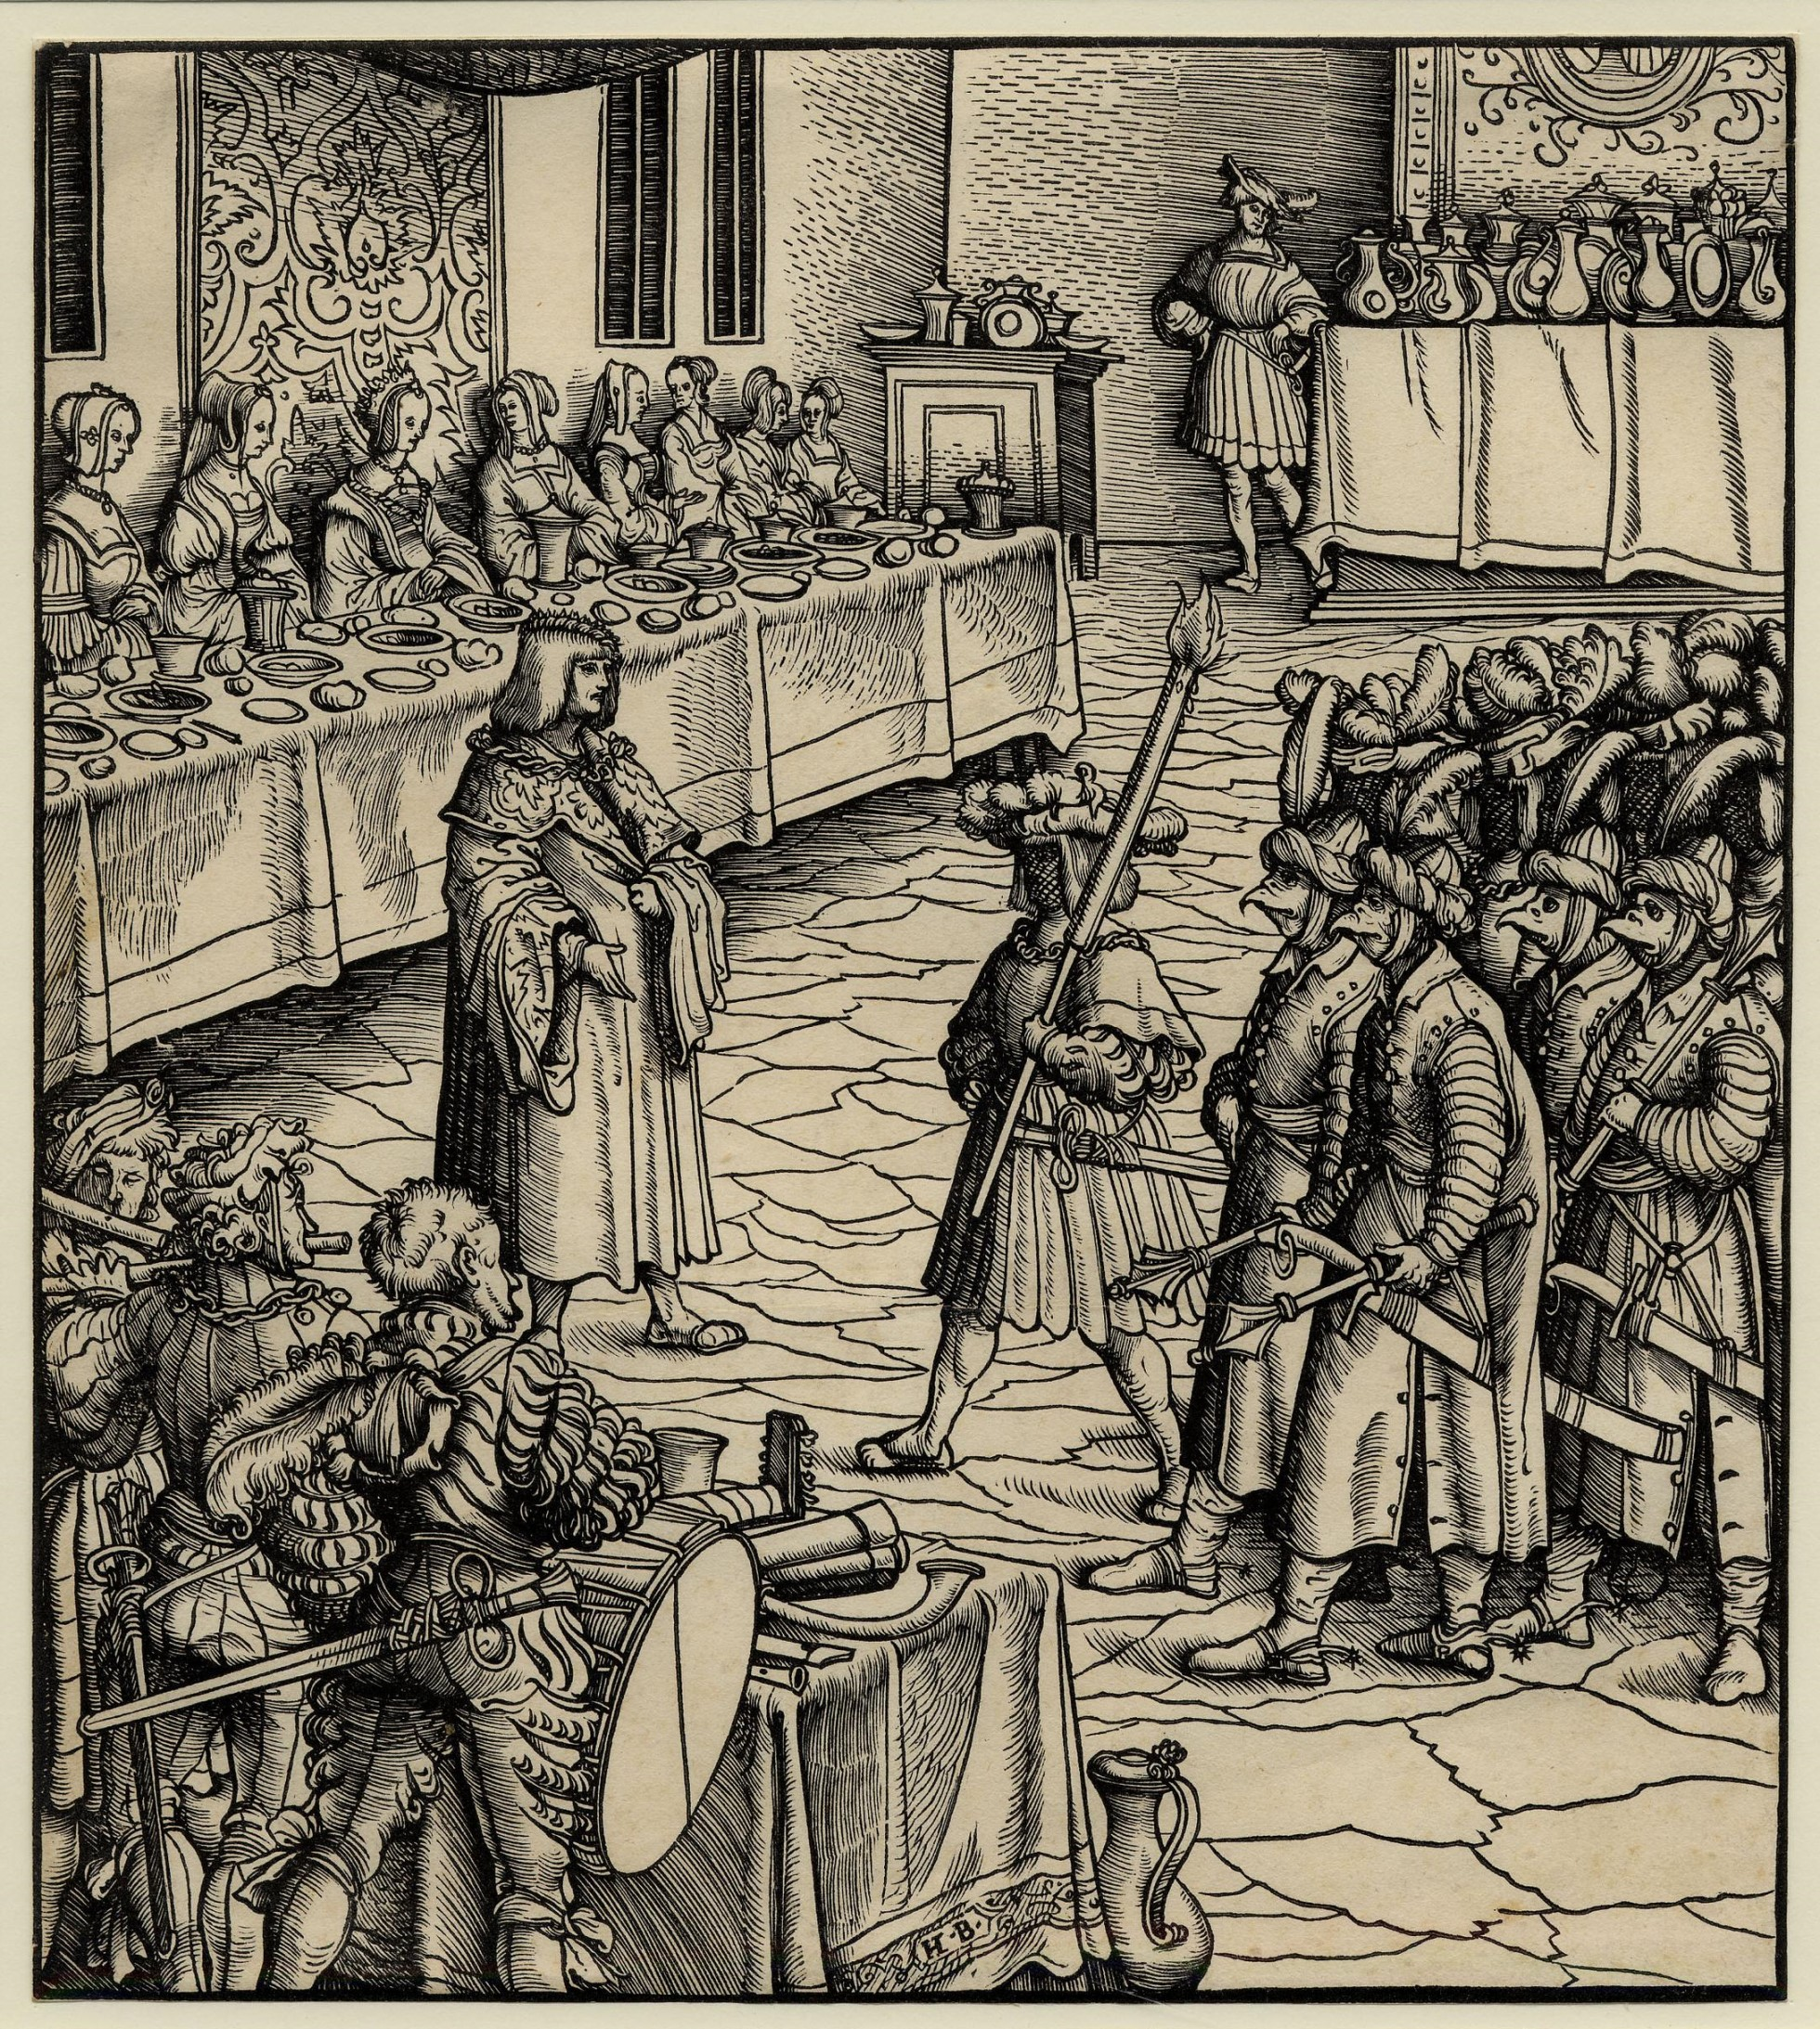 On the left are a group of soldiers wearing bird masks. Musicians in foreground with their backs to us. Some of their instruments sit on the table. Ladies-in-waiting are feasting in background on a long table. In the background is a table covered with a cloth and holding jugs and other items.